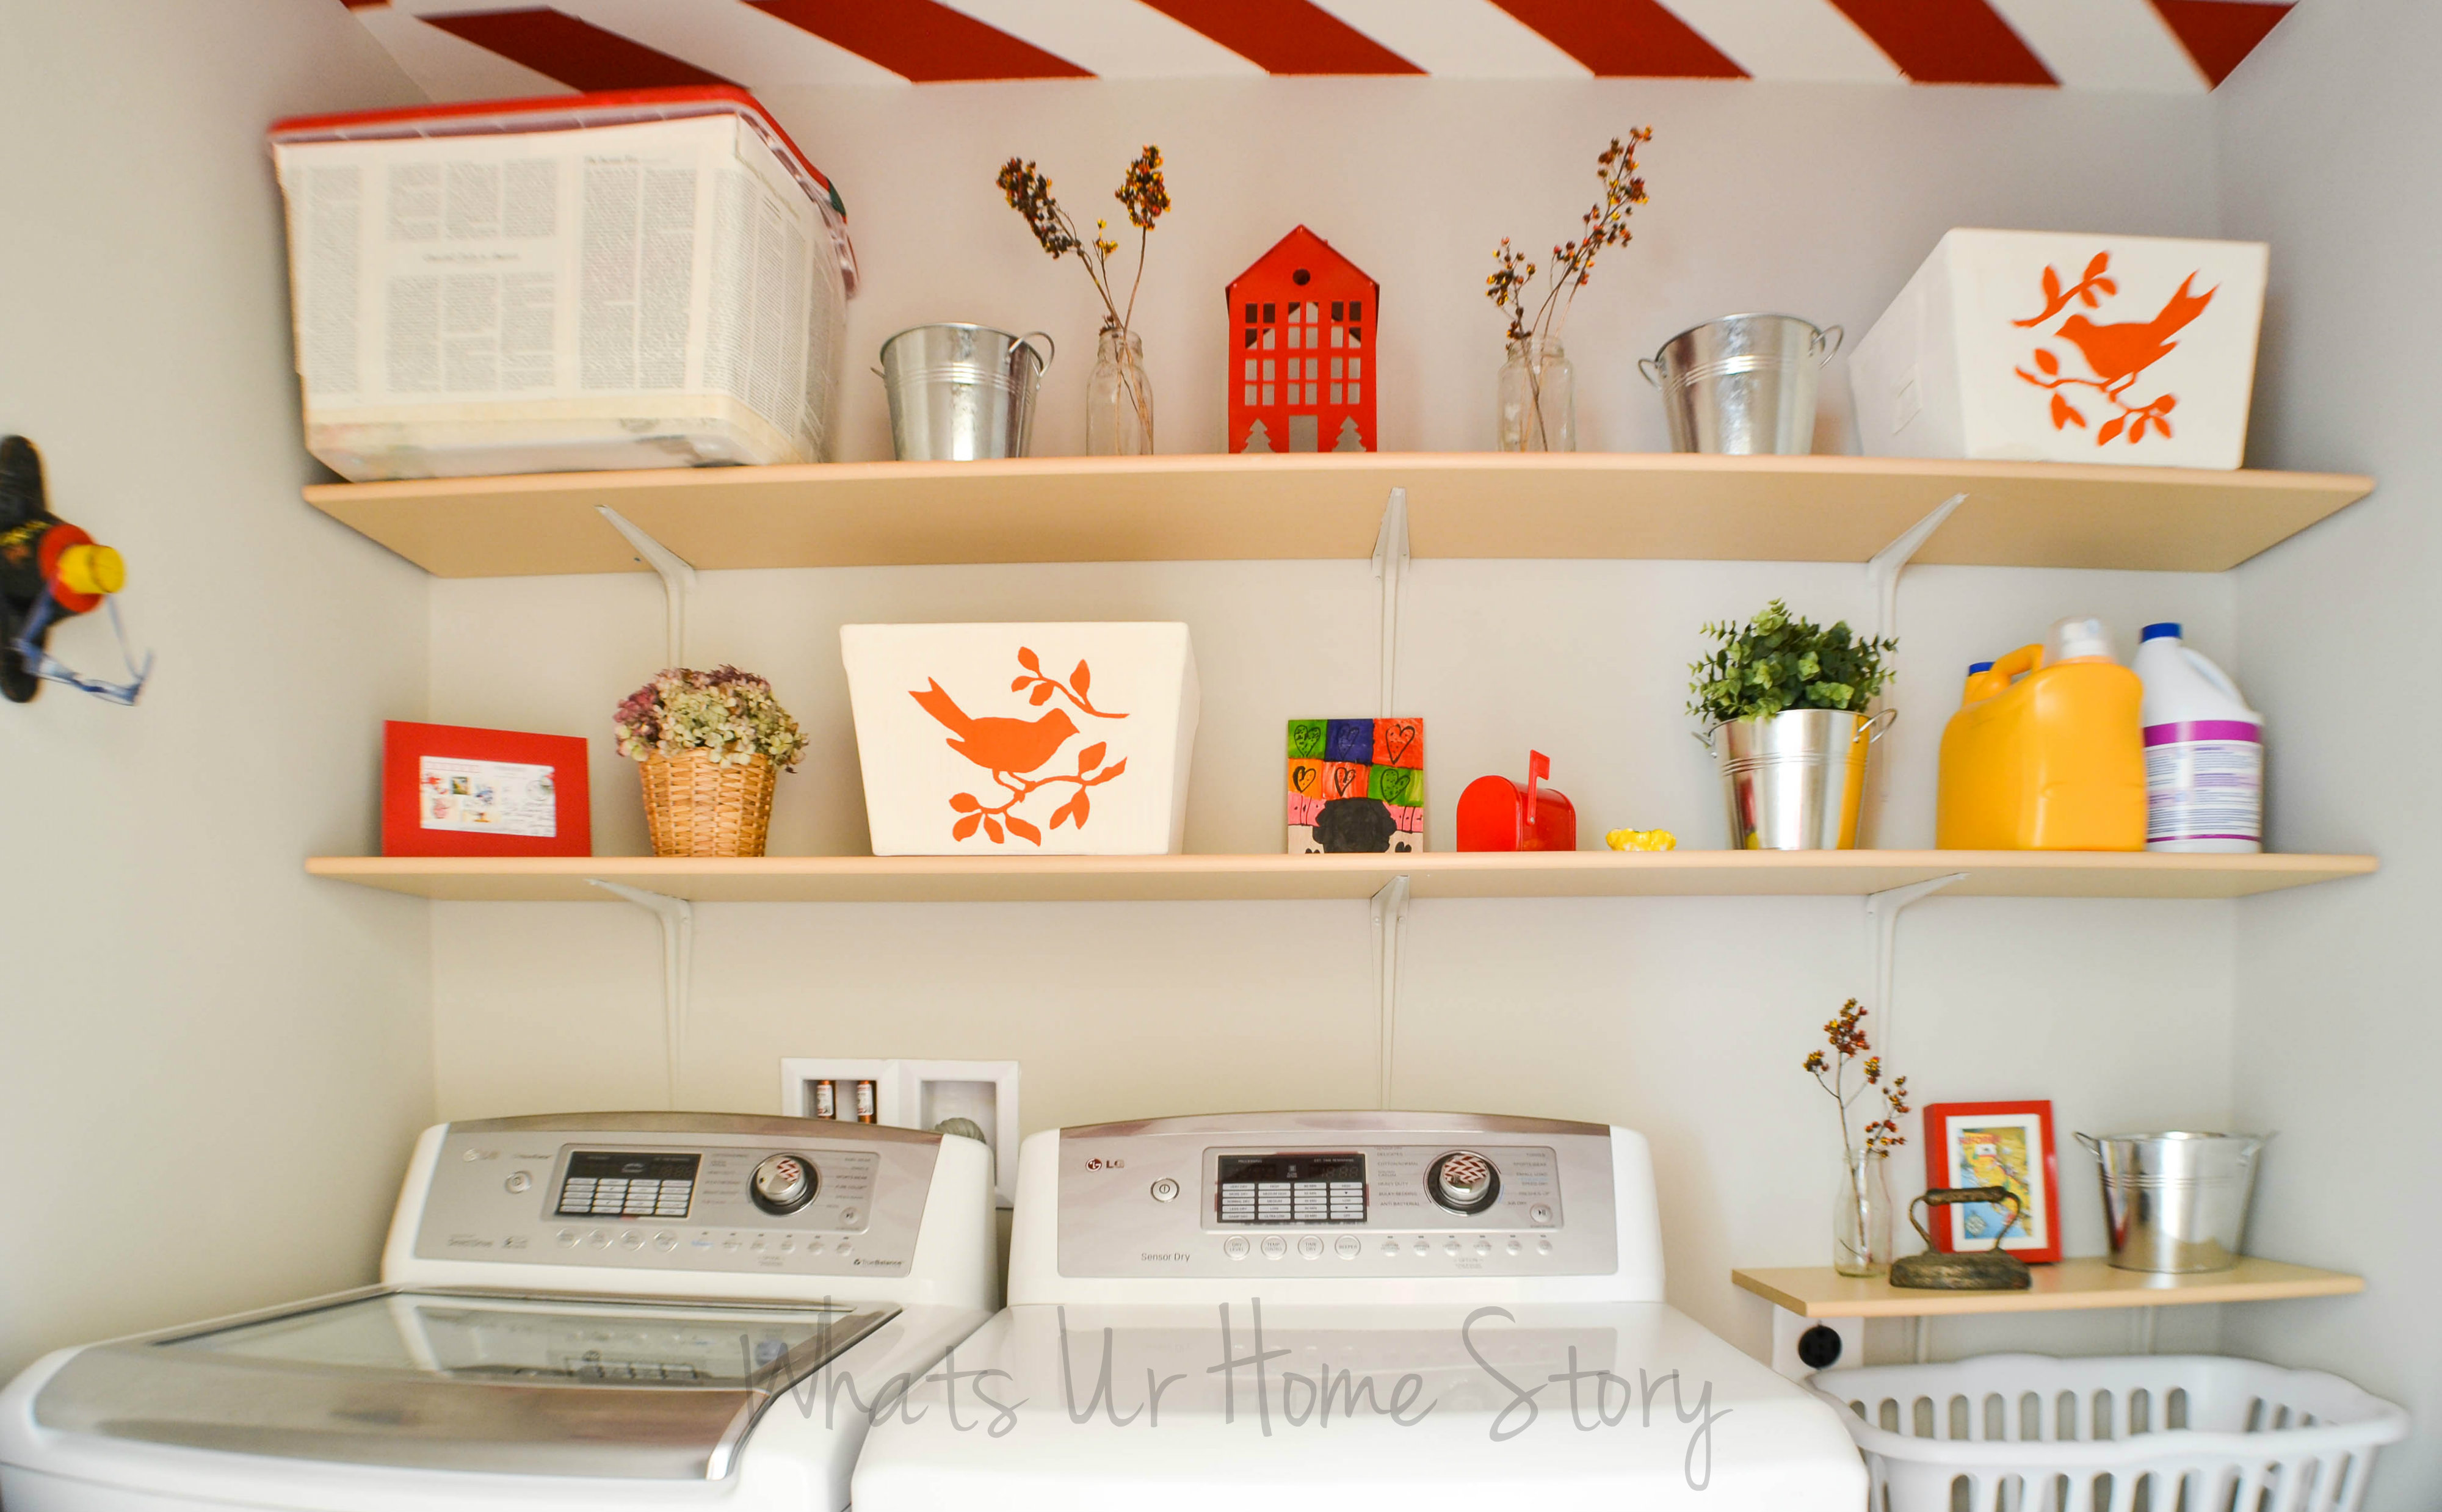 Simple diy wall shelves for the laundry room whats ur for Laundry room shelving diy